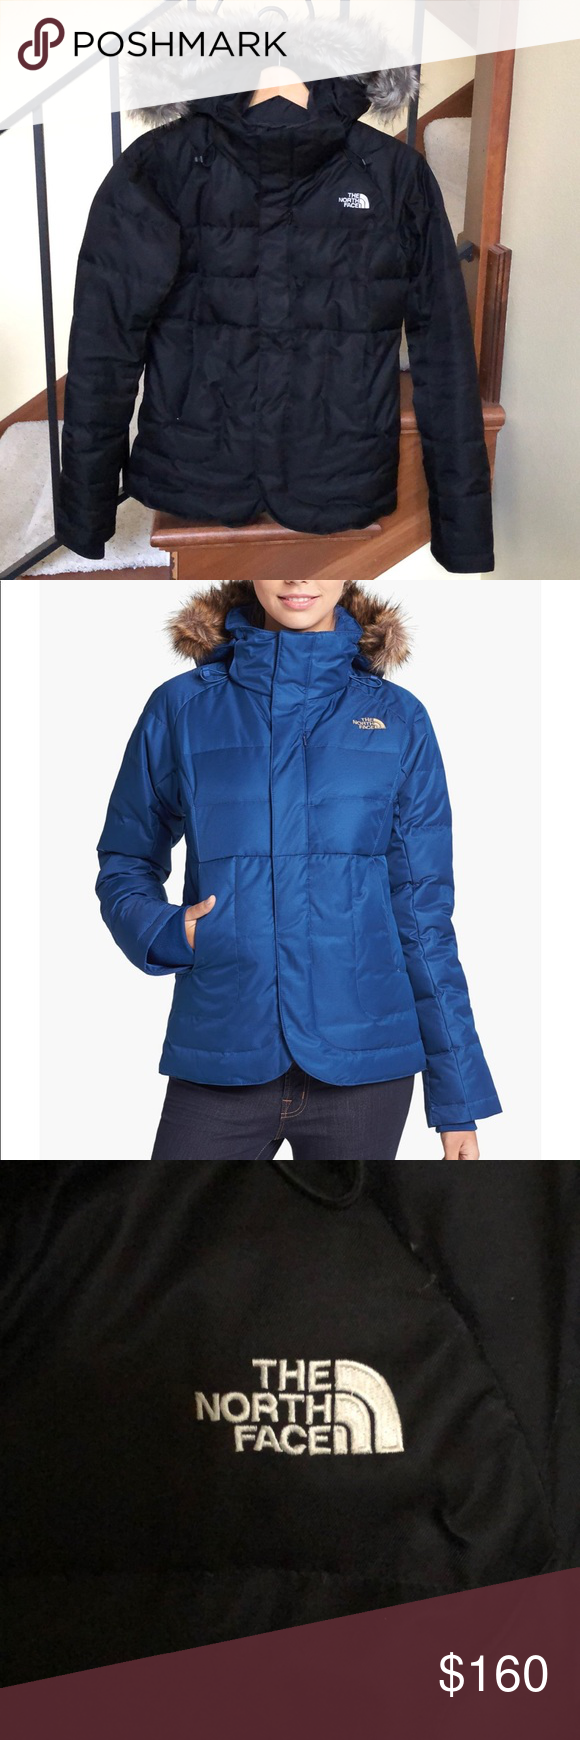 The North Face Women S Keats Down Jacket North Face Women North Face Jacket Down Jacket [ 1740 x 580 Pixel ]